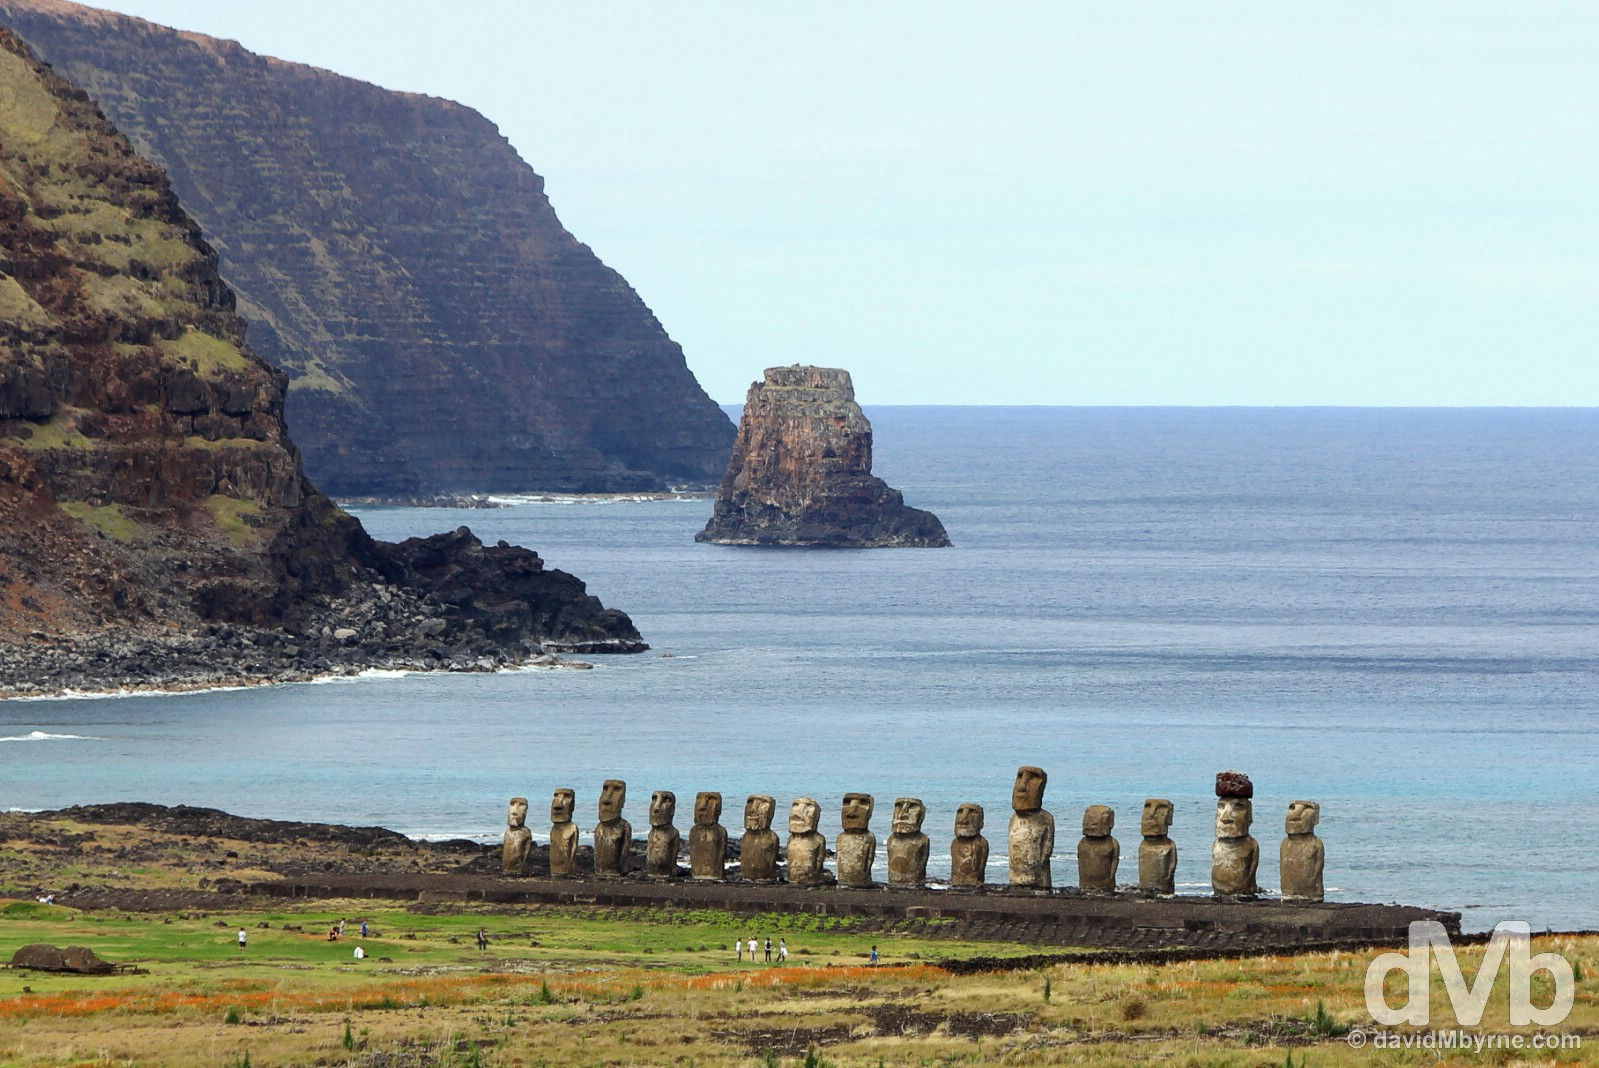 Ahu Tongariki as seen from Rano Raraku on Easter Island, Chile. September 29, 2015.